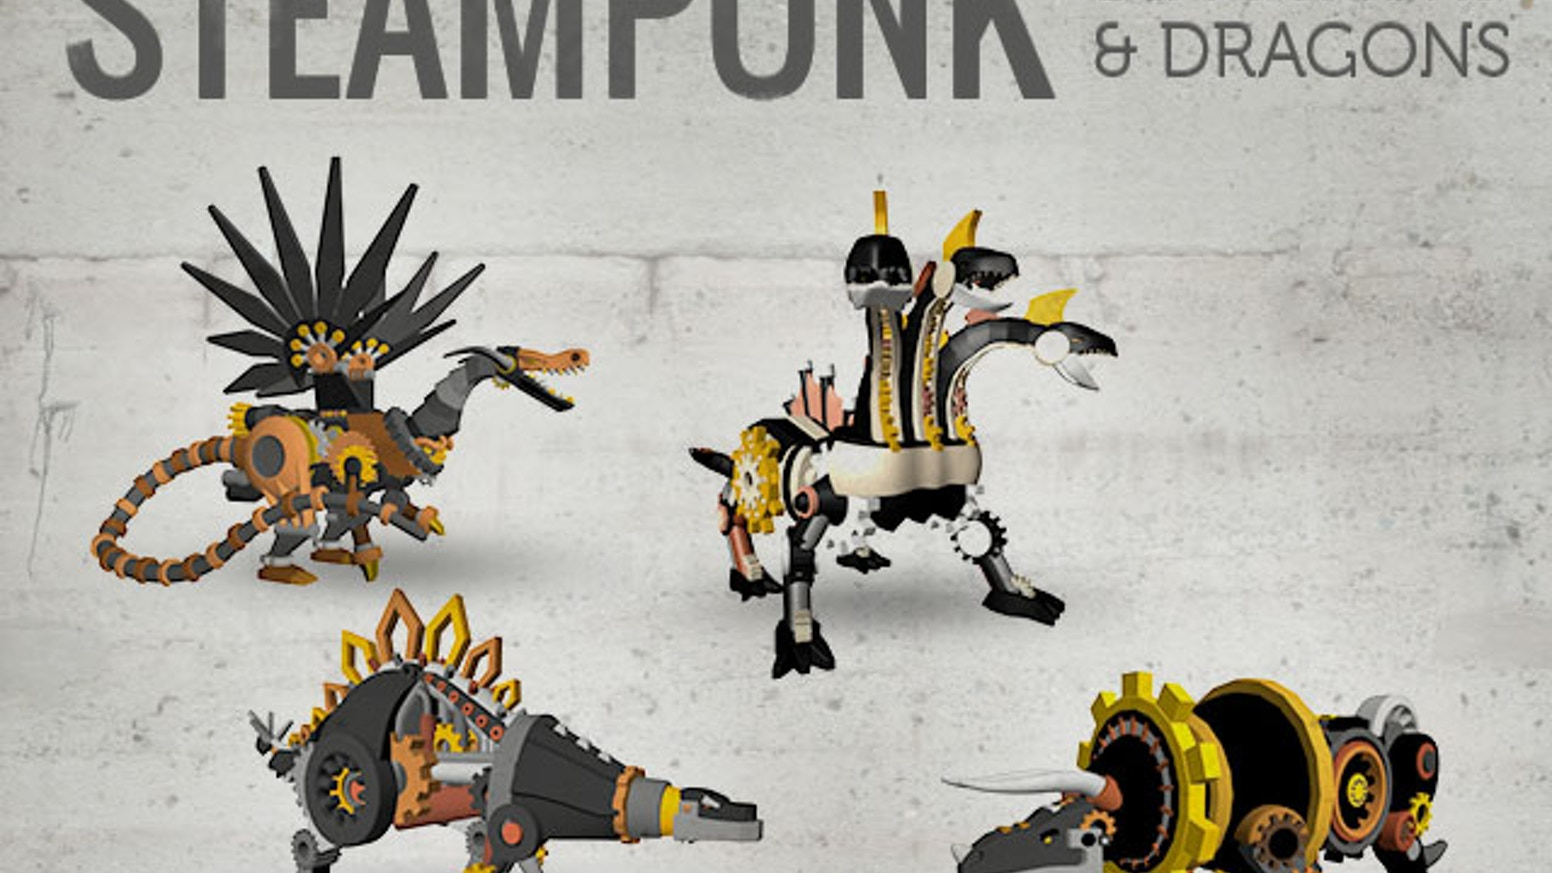 steampunk dinosaurs dragons 3d printed by whiteclouds kickstarter